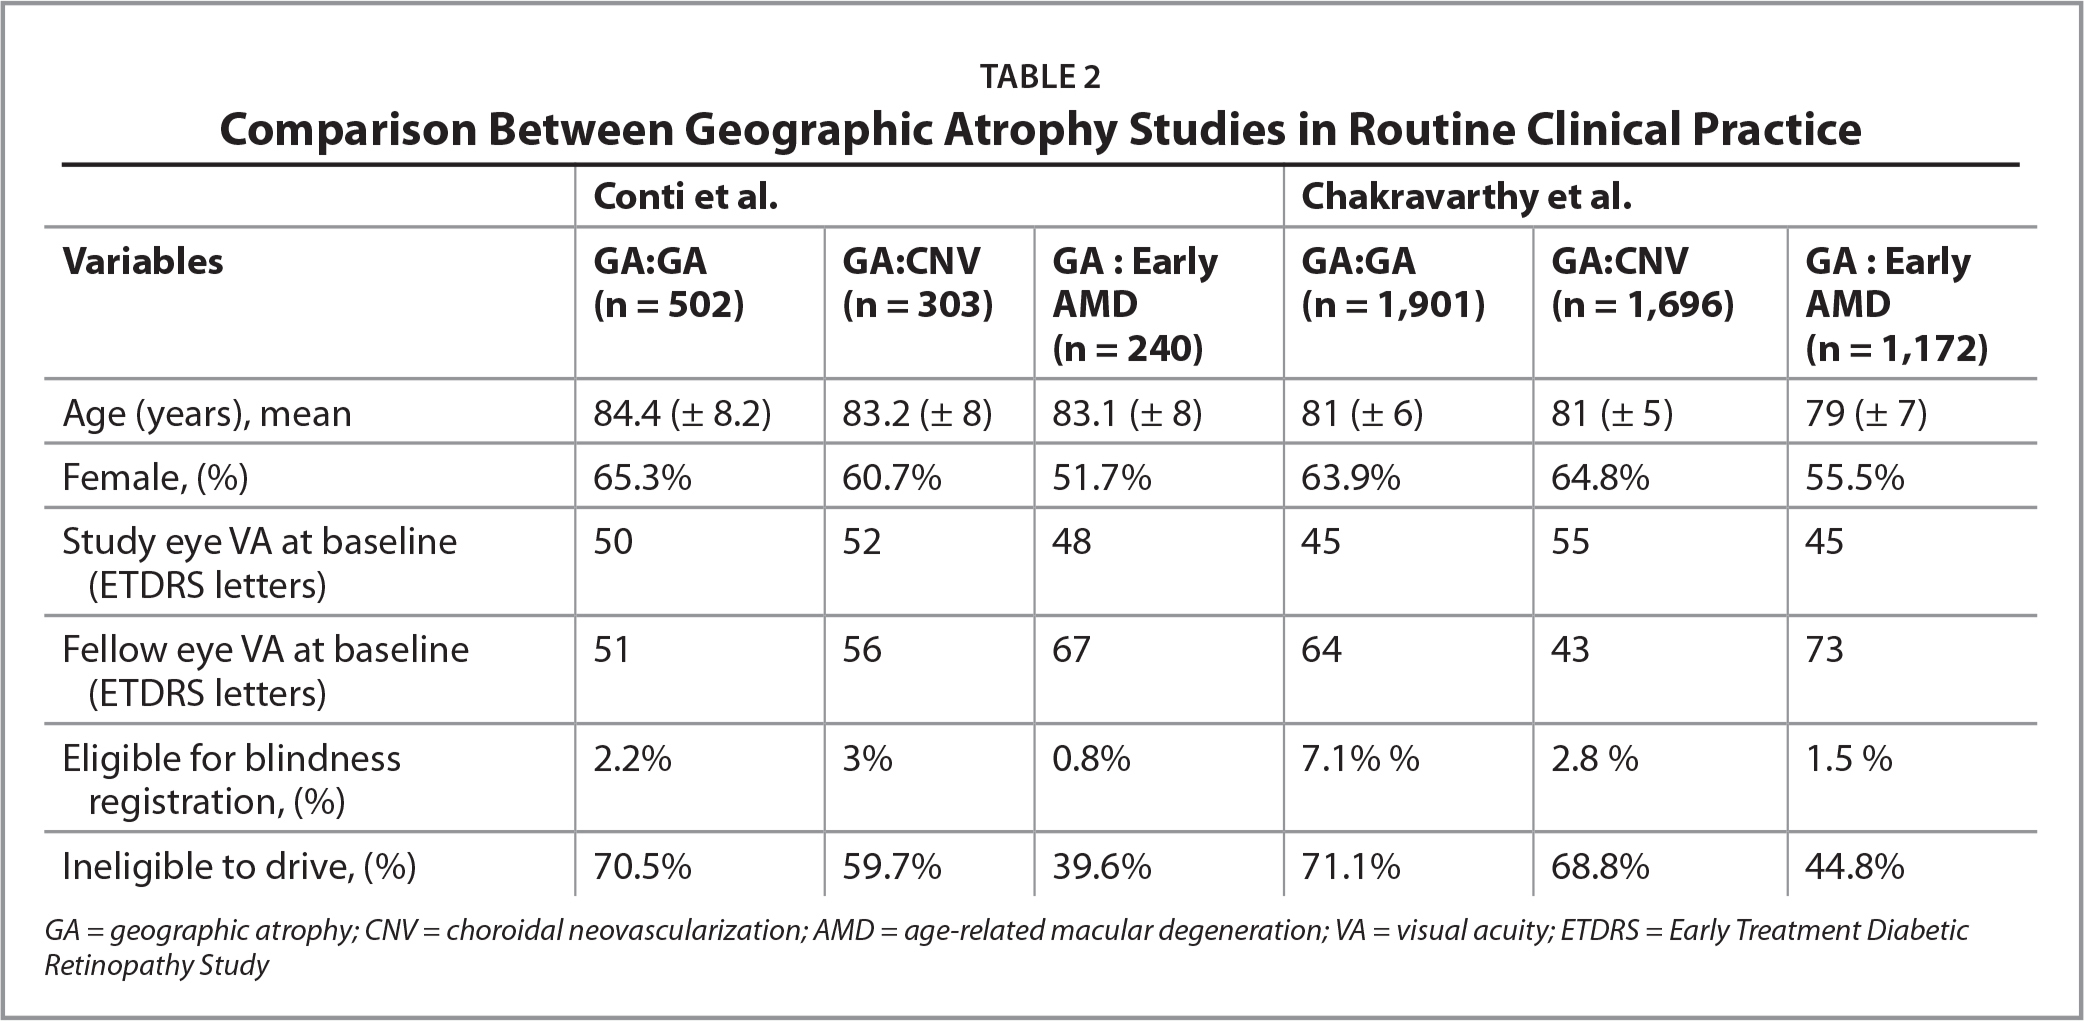 Comparison Between Geographic Atrophy Studies in Routine Clinical Practice